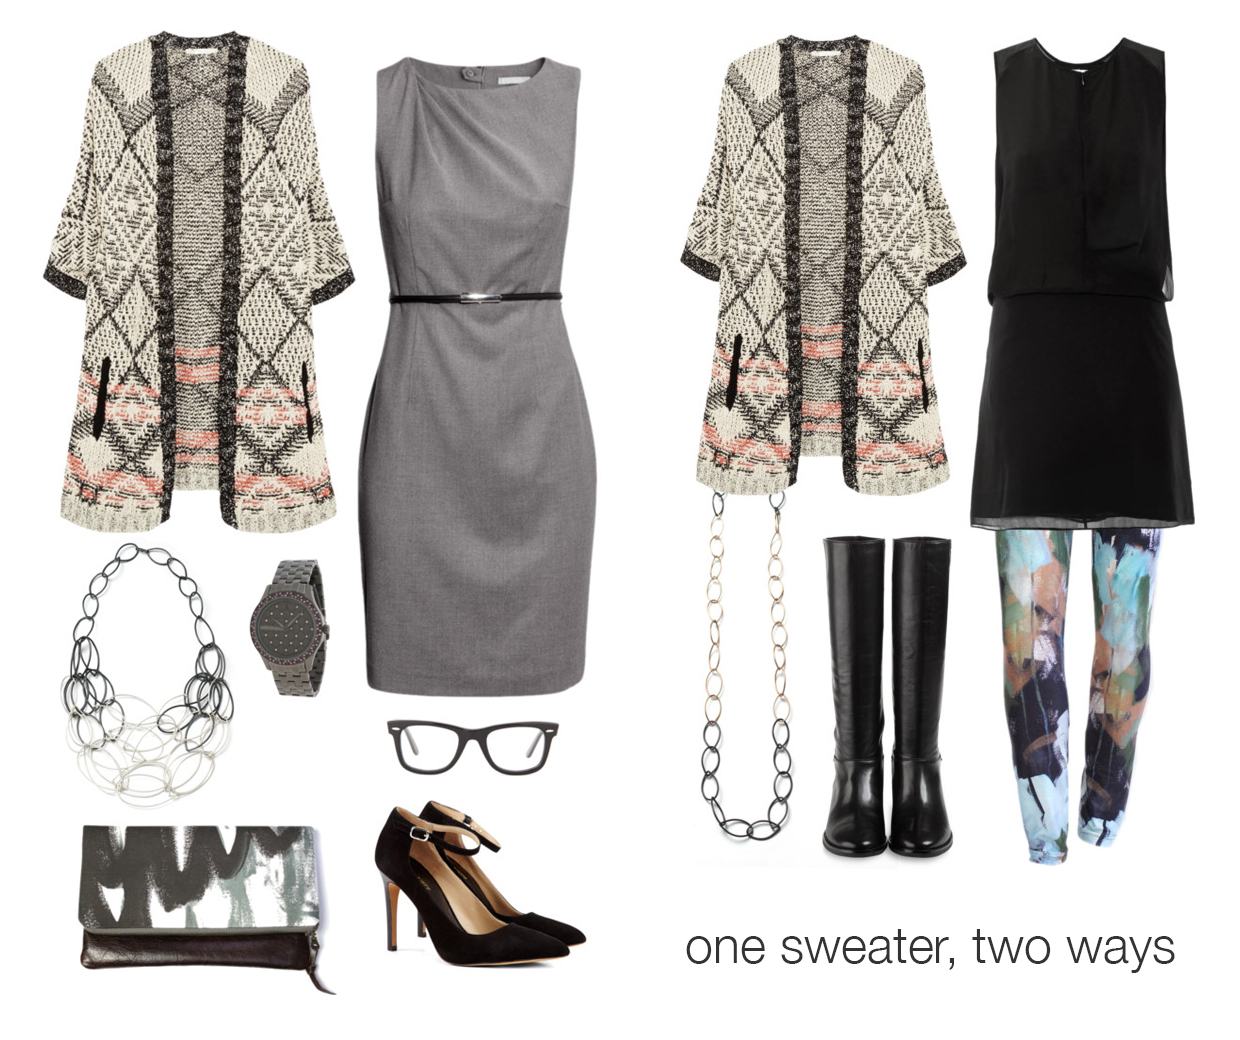 one sweater, two ways via megan auman